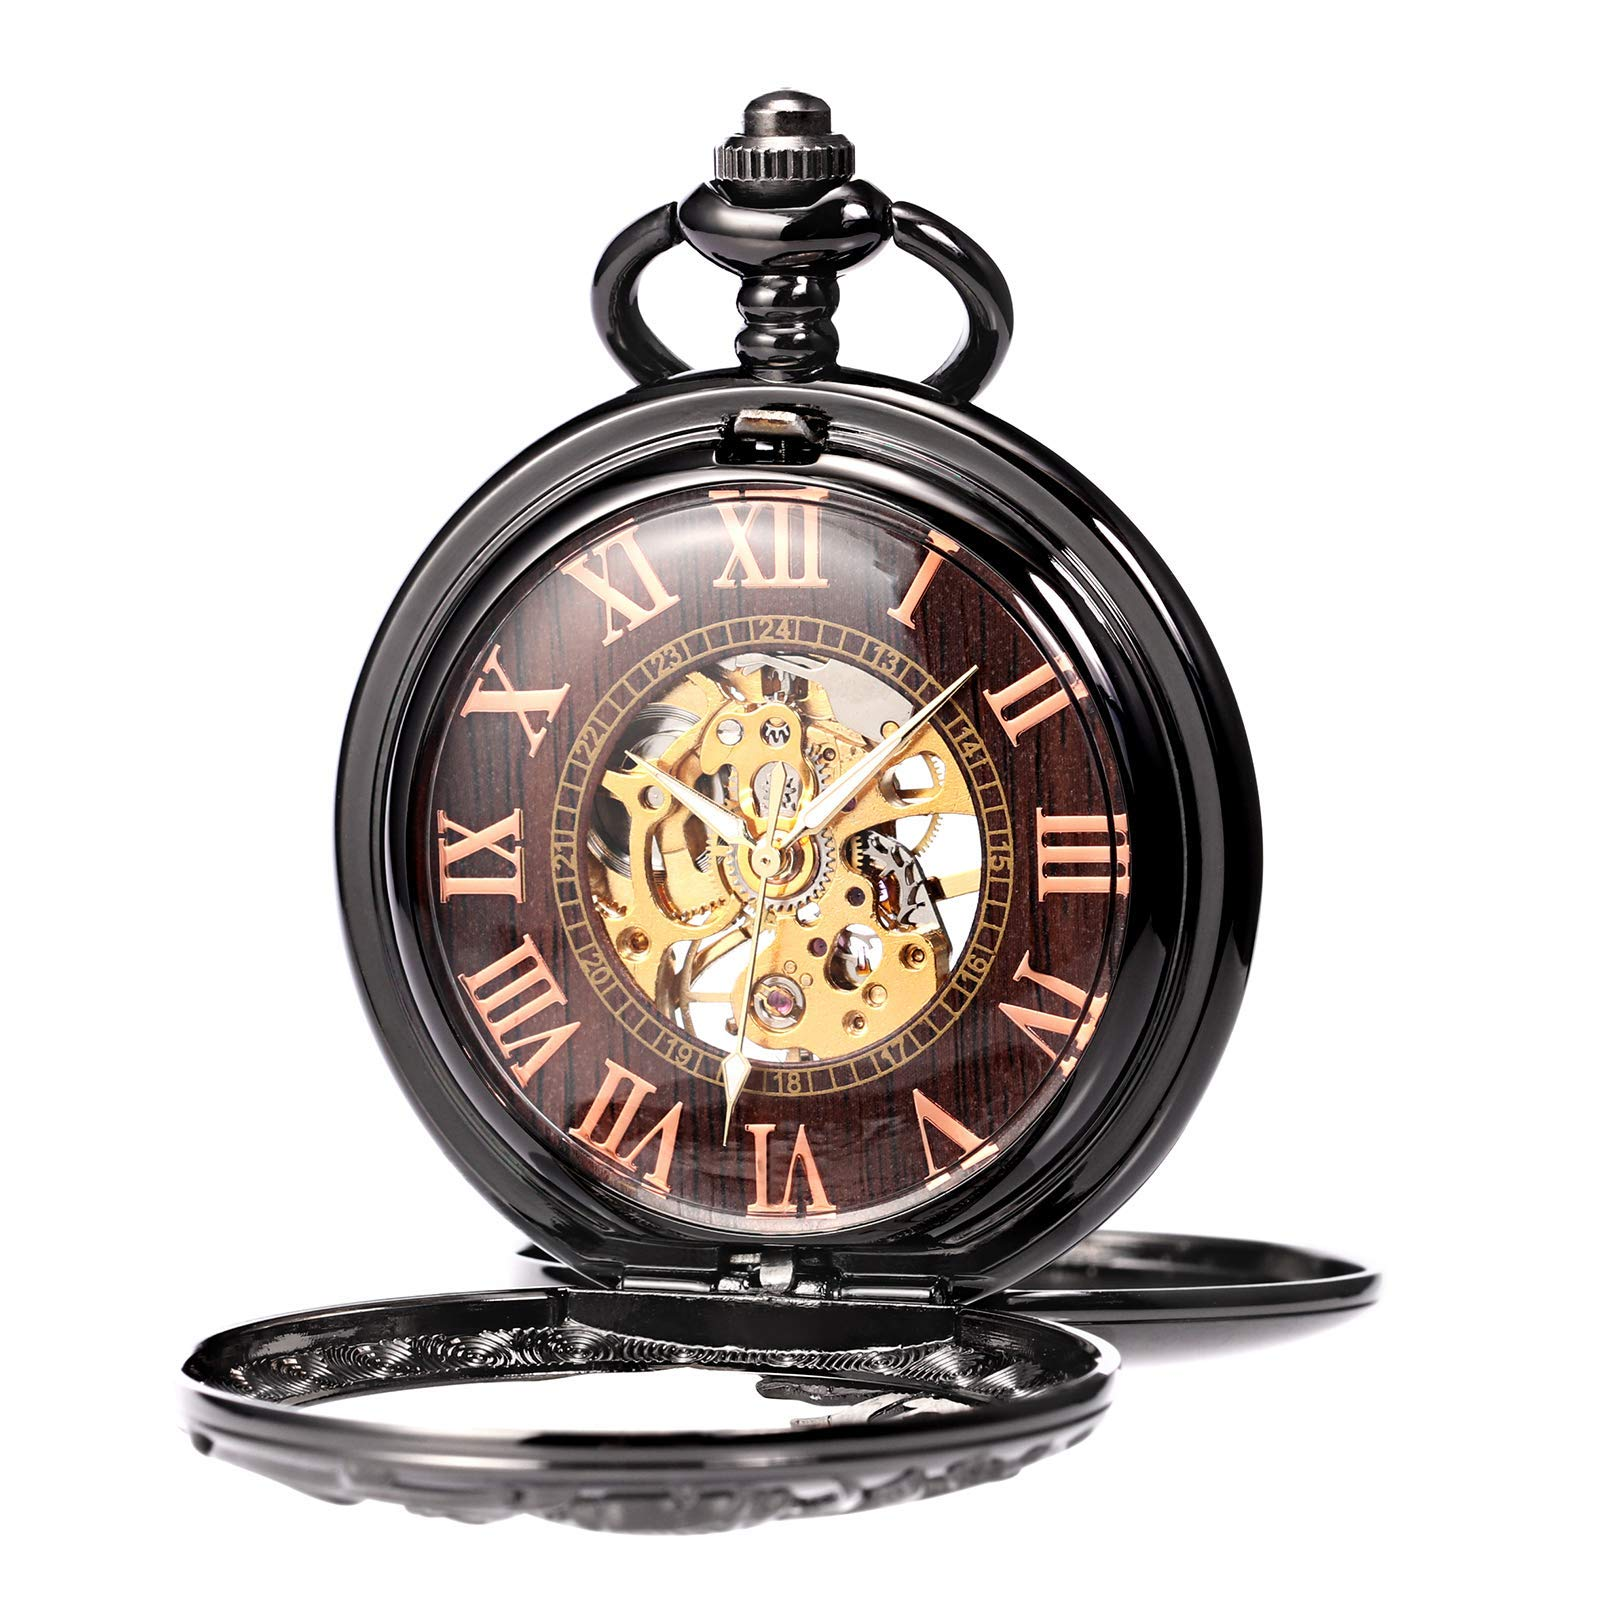 Treeweto Antique Dragon Mechanical Skeleton Pocket Watch with Chain by TREEWETO (Image #2)